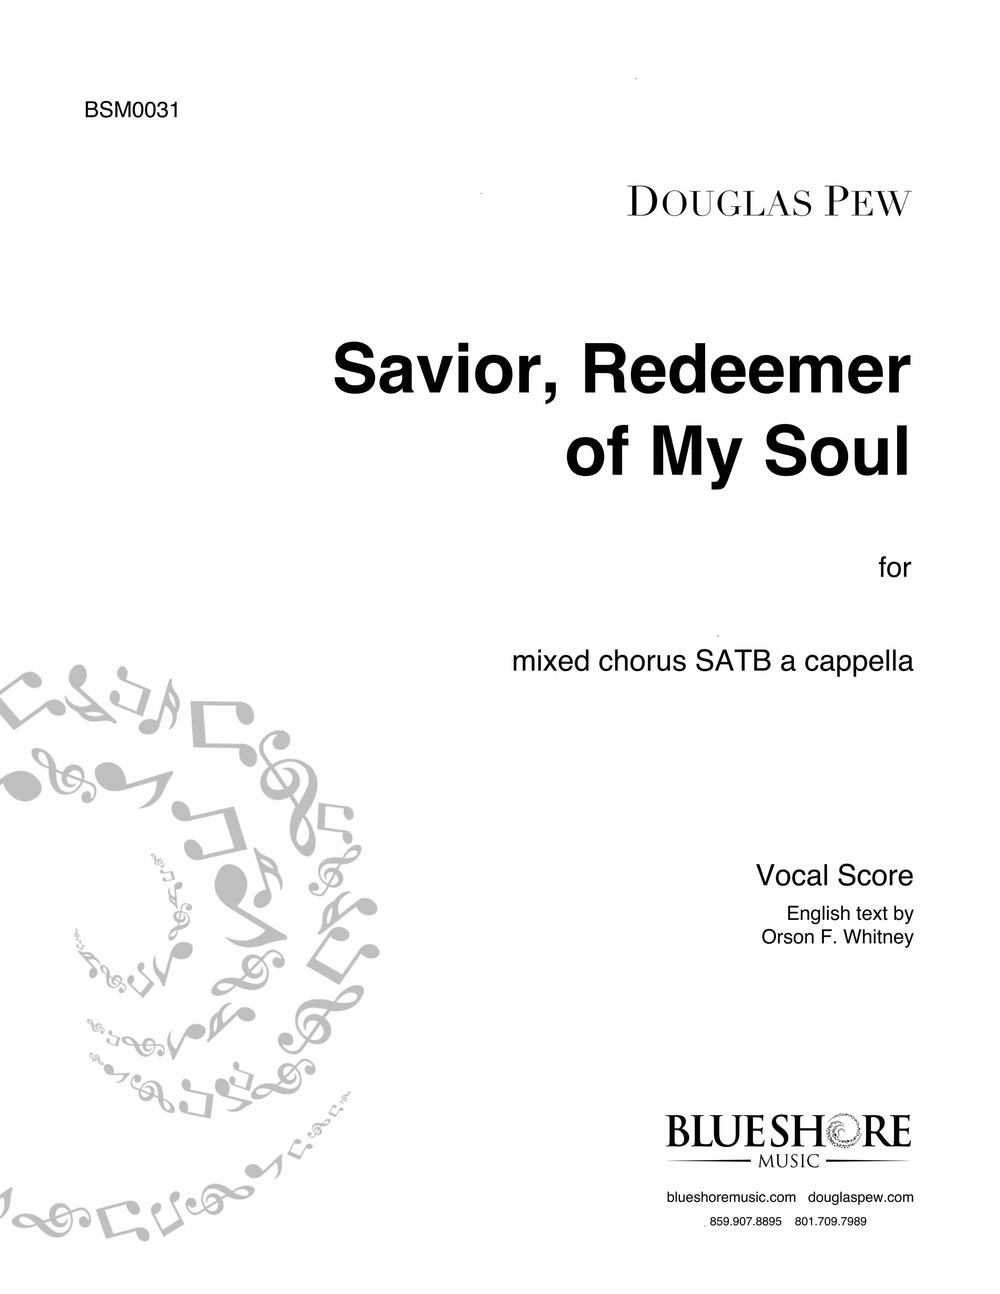 Savior, Redeemer of My Soul, for SATB a cappella